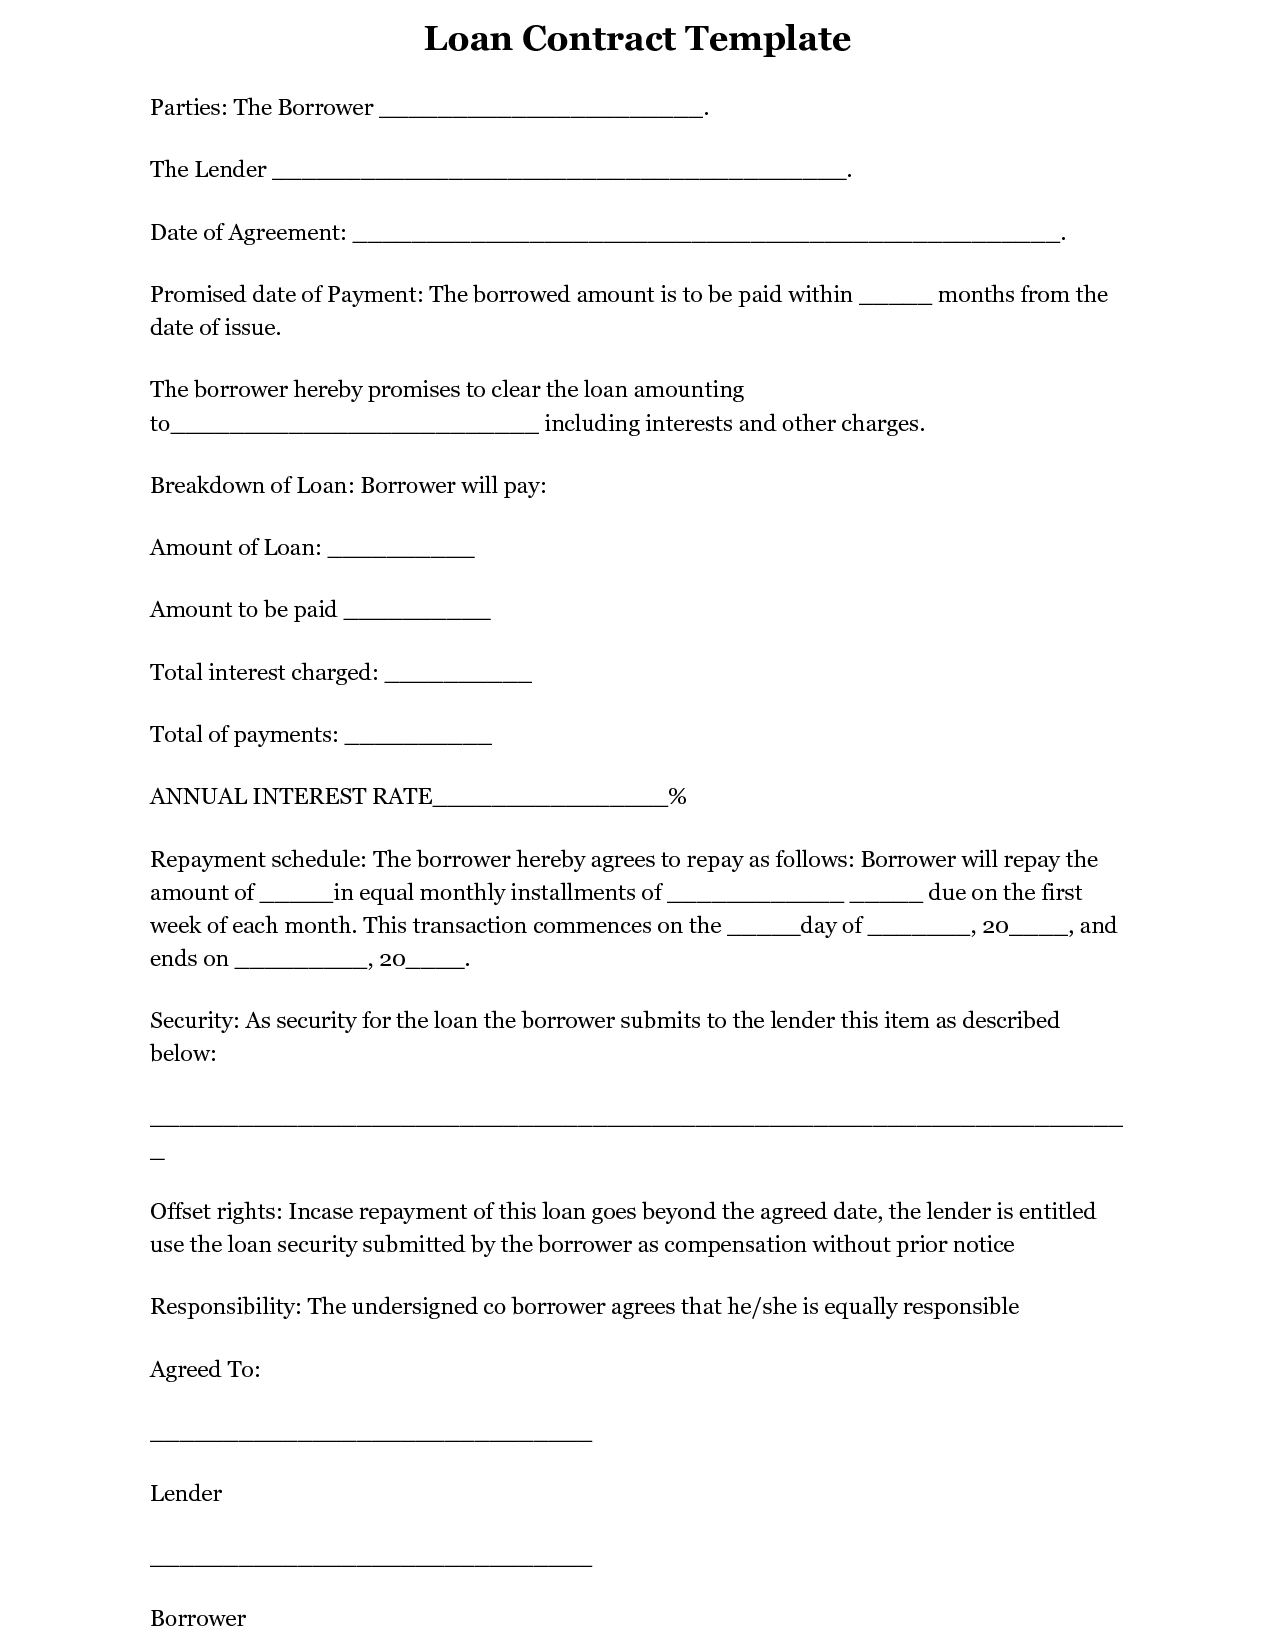 Awesome Simple Loan Agreement Form Free Loan Contract Template 26 Examples In Word  Pdf Free, Commercial Loan Agreement Template Loan Agreement Form Template,  ... Throughout Personal Loan Template Word